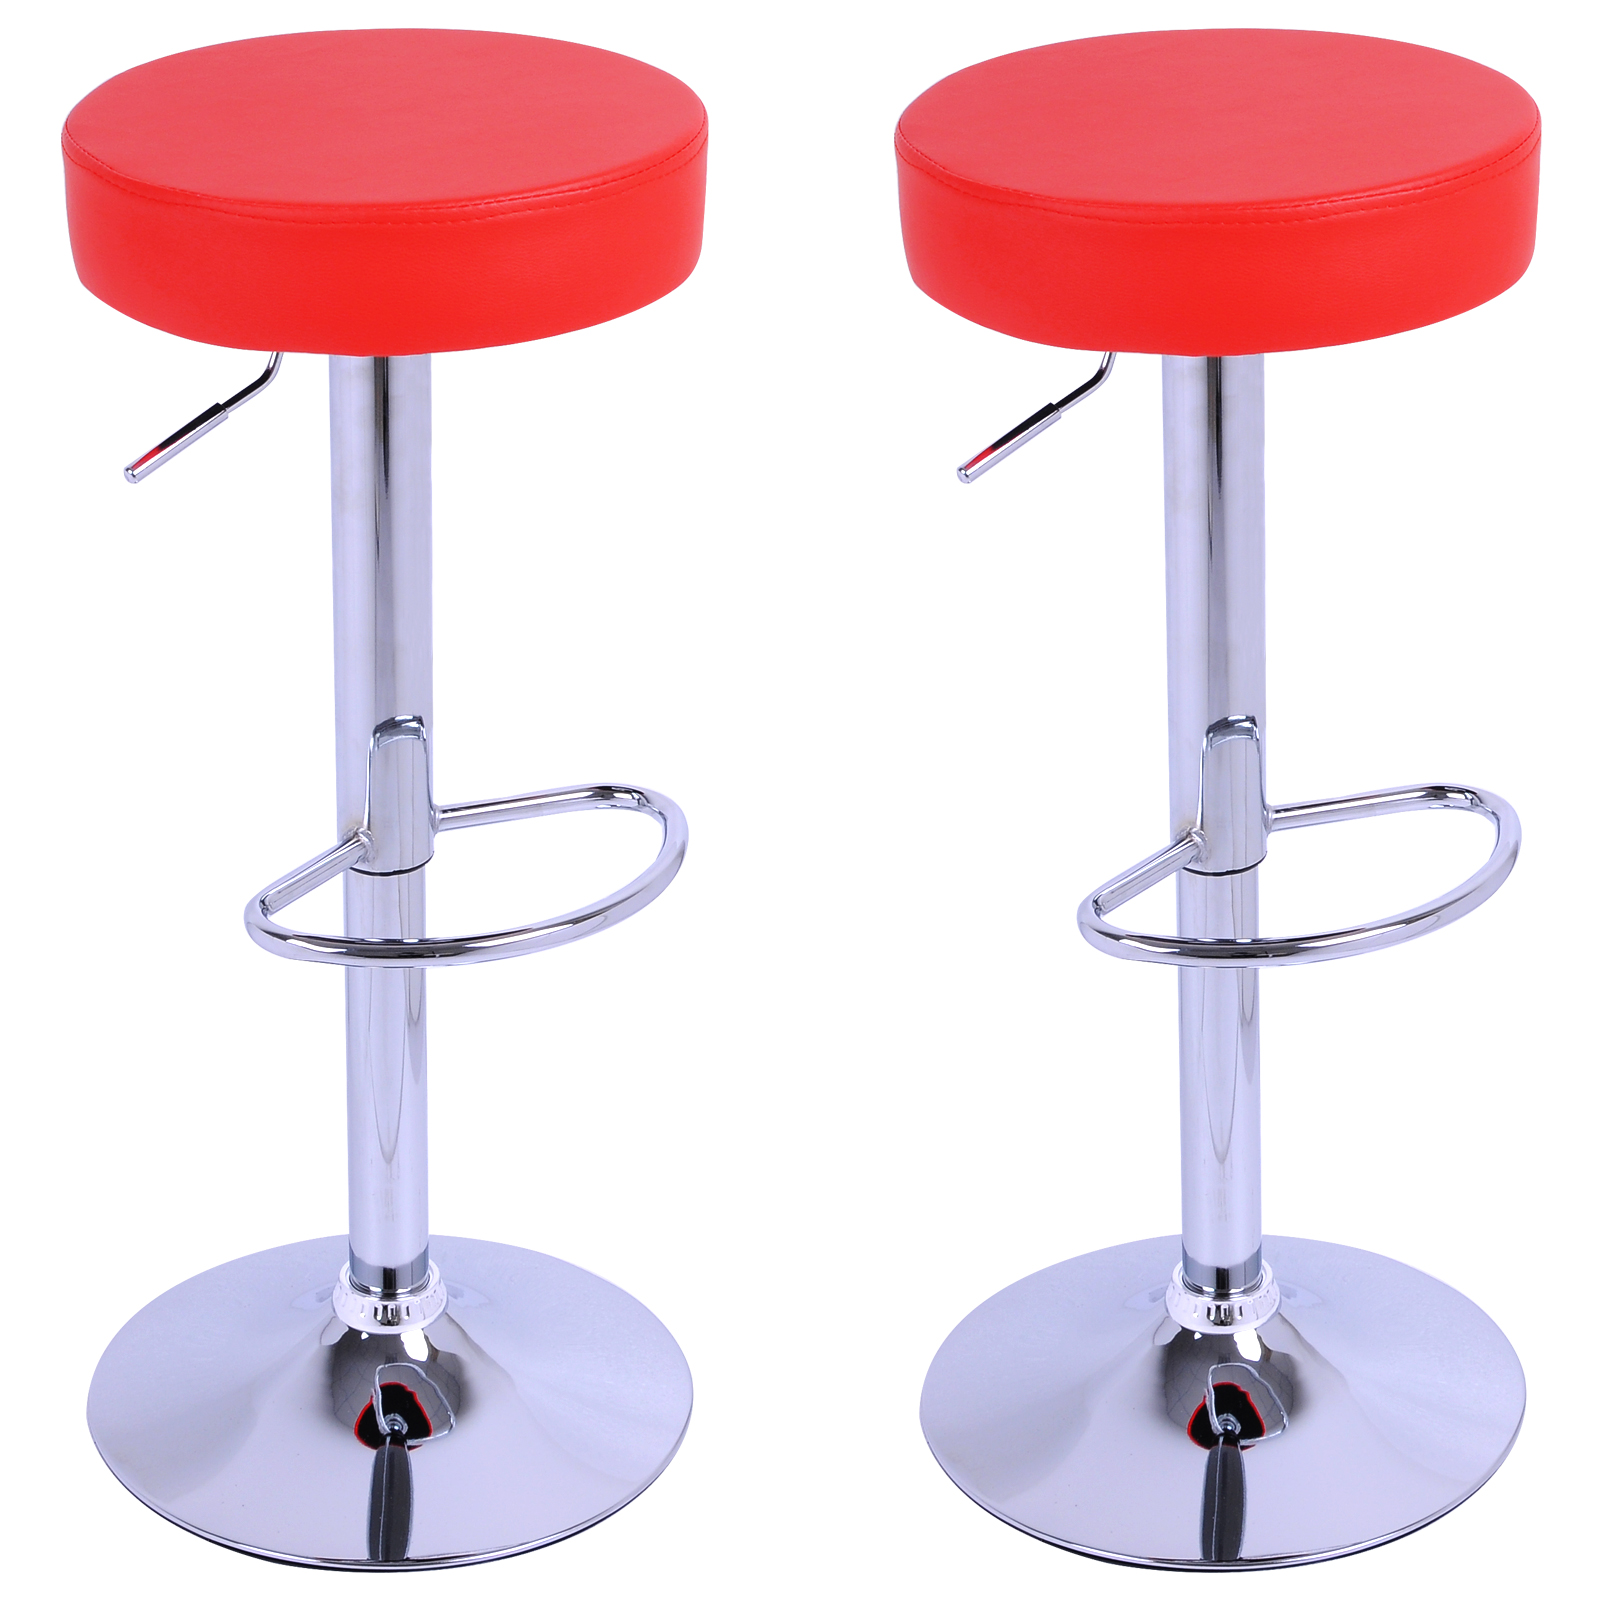 Bar stools set of 2 breakfast kitchen swivel stool chairs for Kitchen swivel bar stools